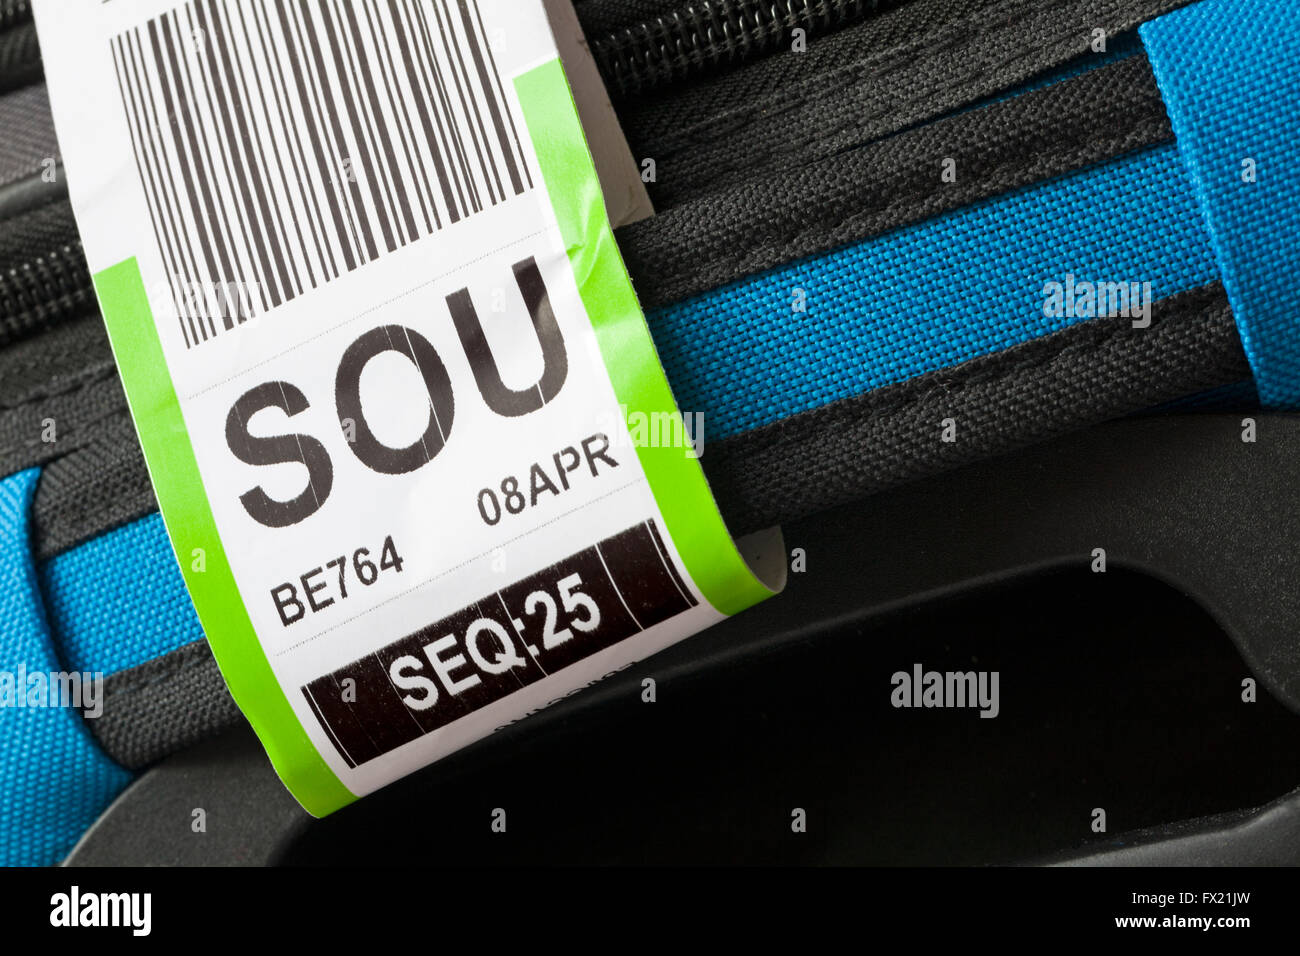 luggage label stuck on case for SOU Southampton airport - Stock Image